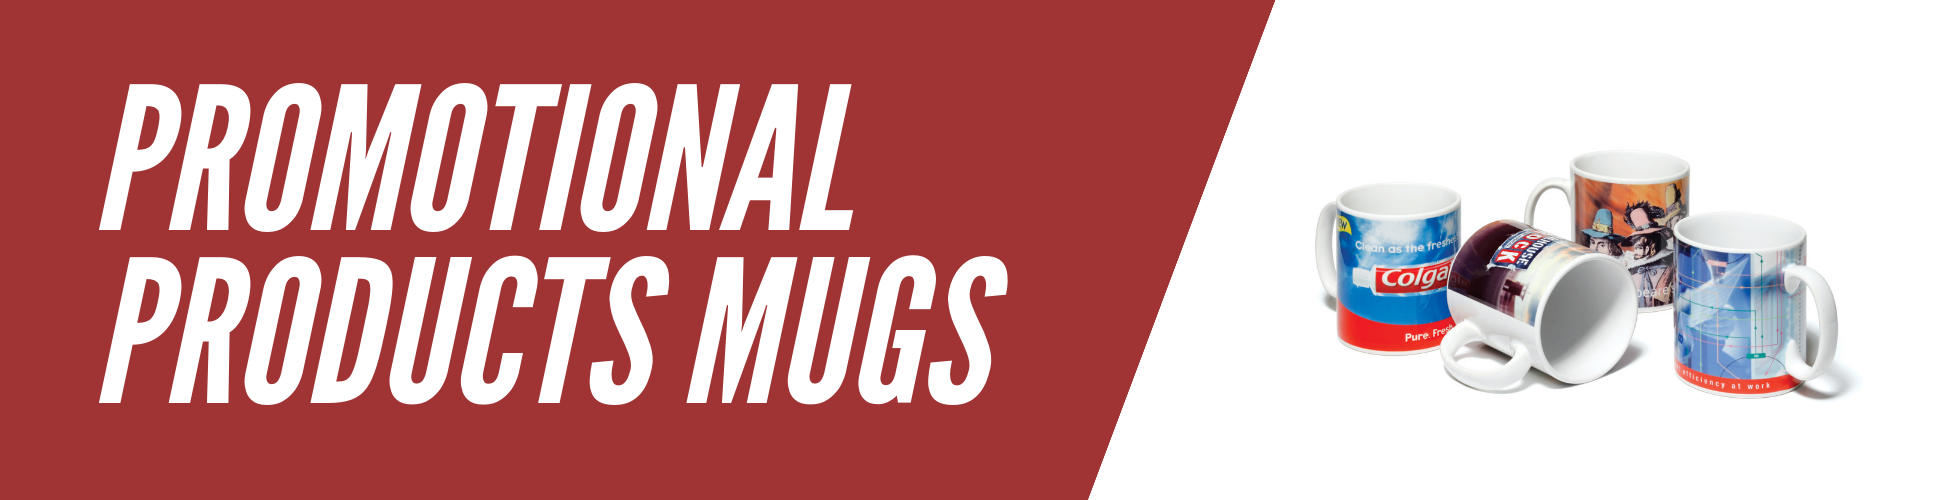 promotional-products-mugs-banner-v2.png